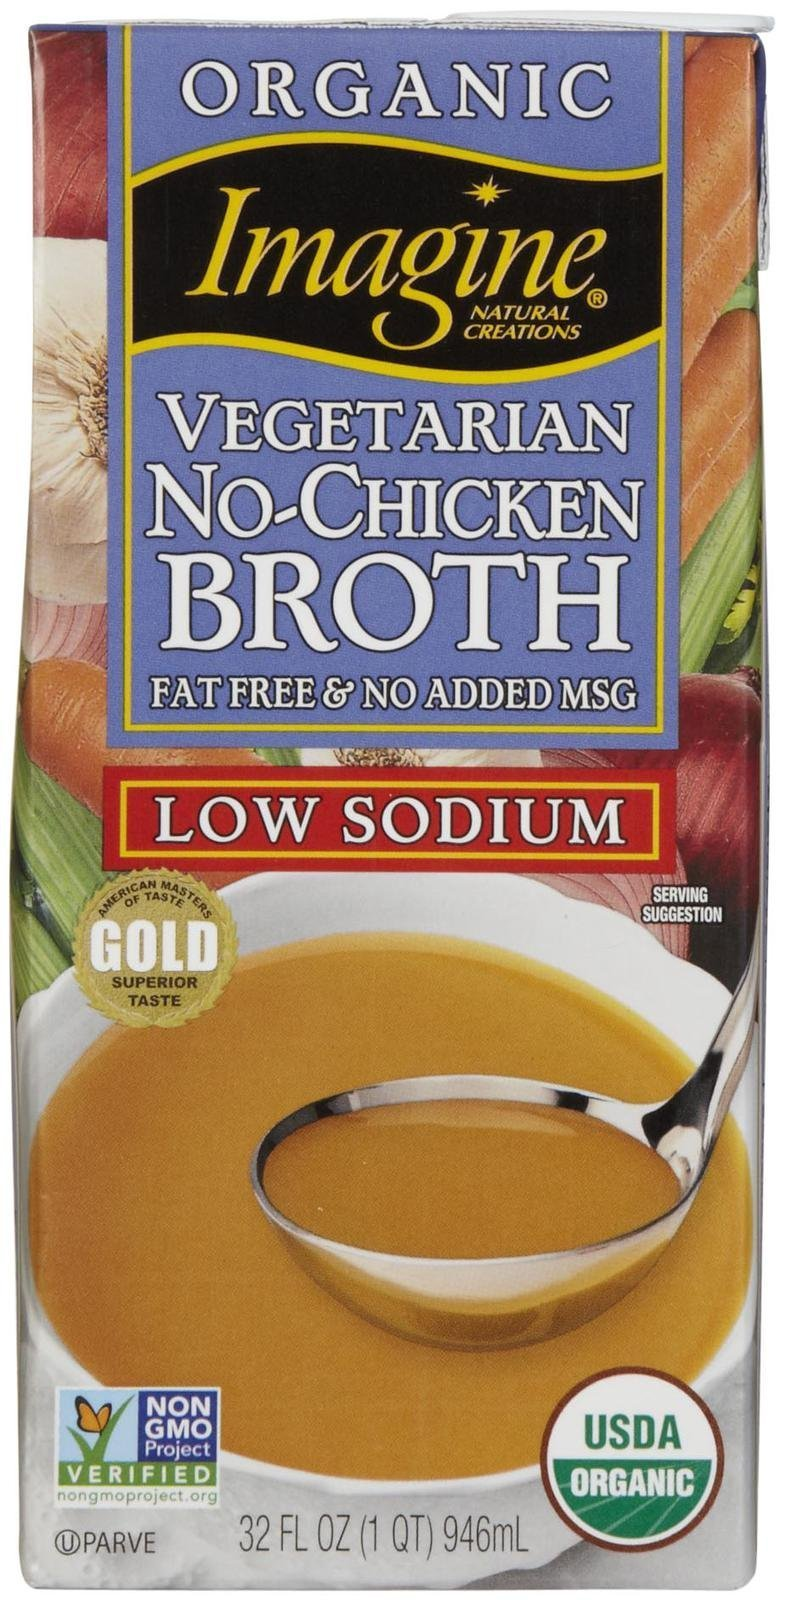 Imagine Organic No Chicken Broth, Low Sodium, 32 oz